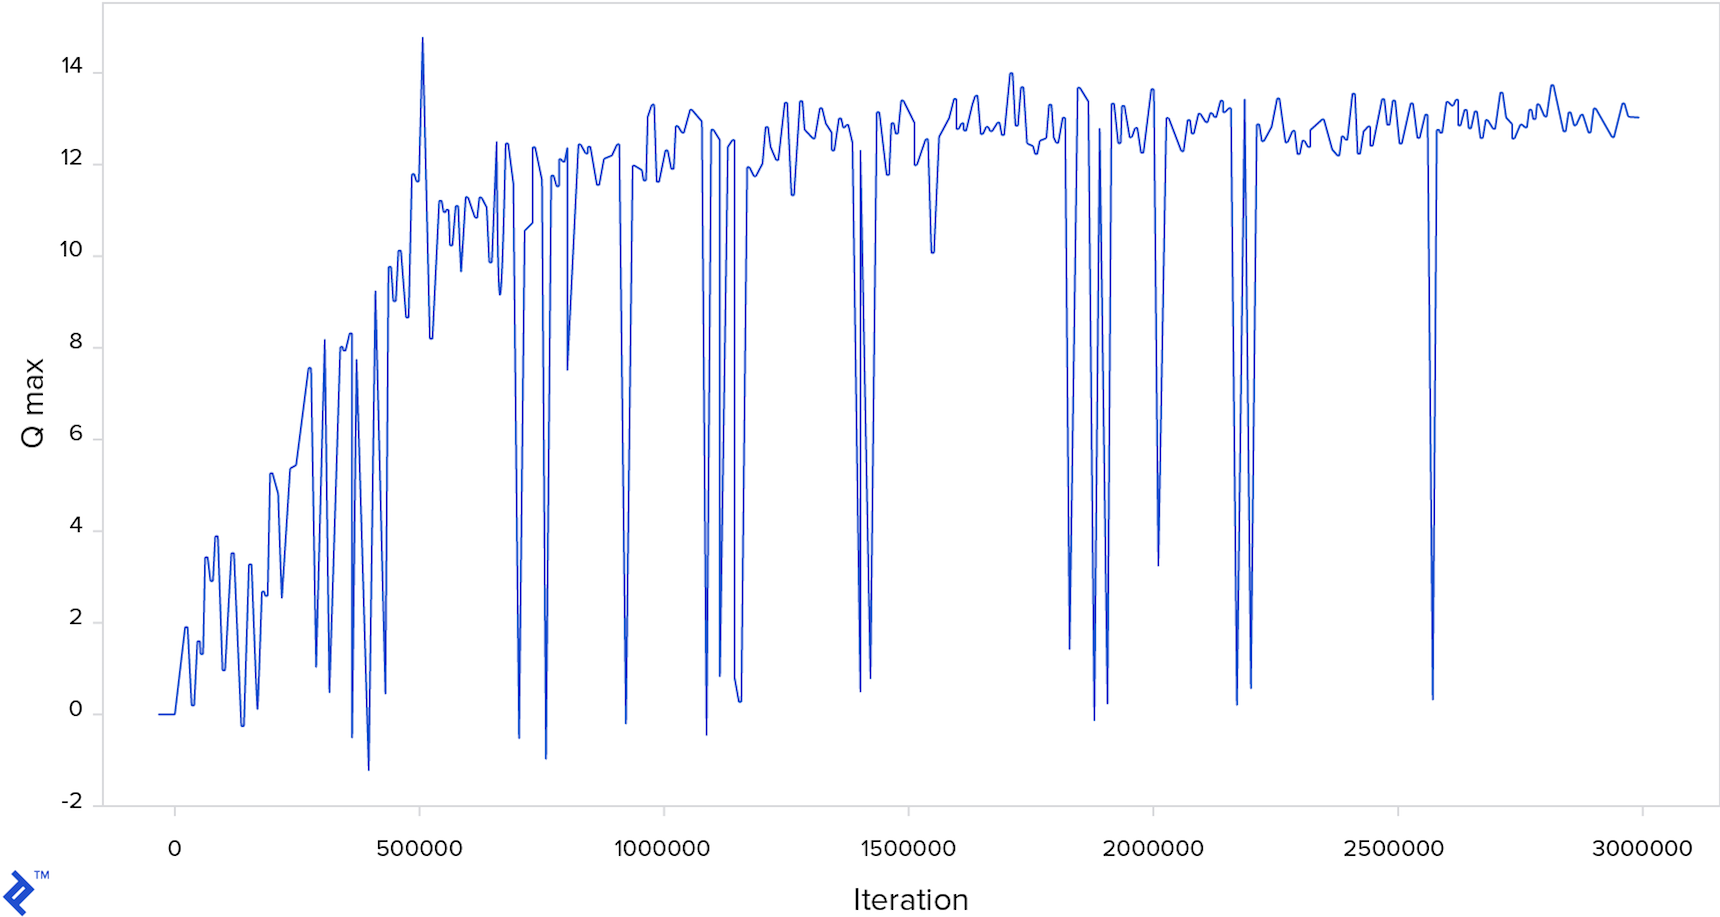 A chart showing how the maximum Q-value changed during iterations. Starting at zero and with several downward spikes, it shows an overall trend toward a Q-value maximum around 12 or 13 after around a million iterations.